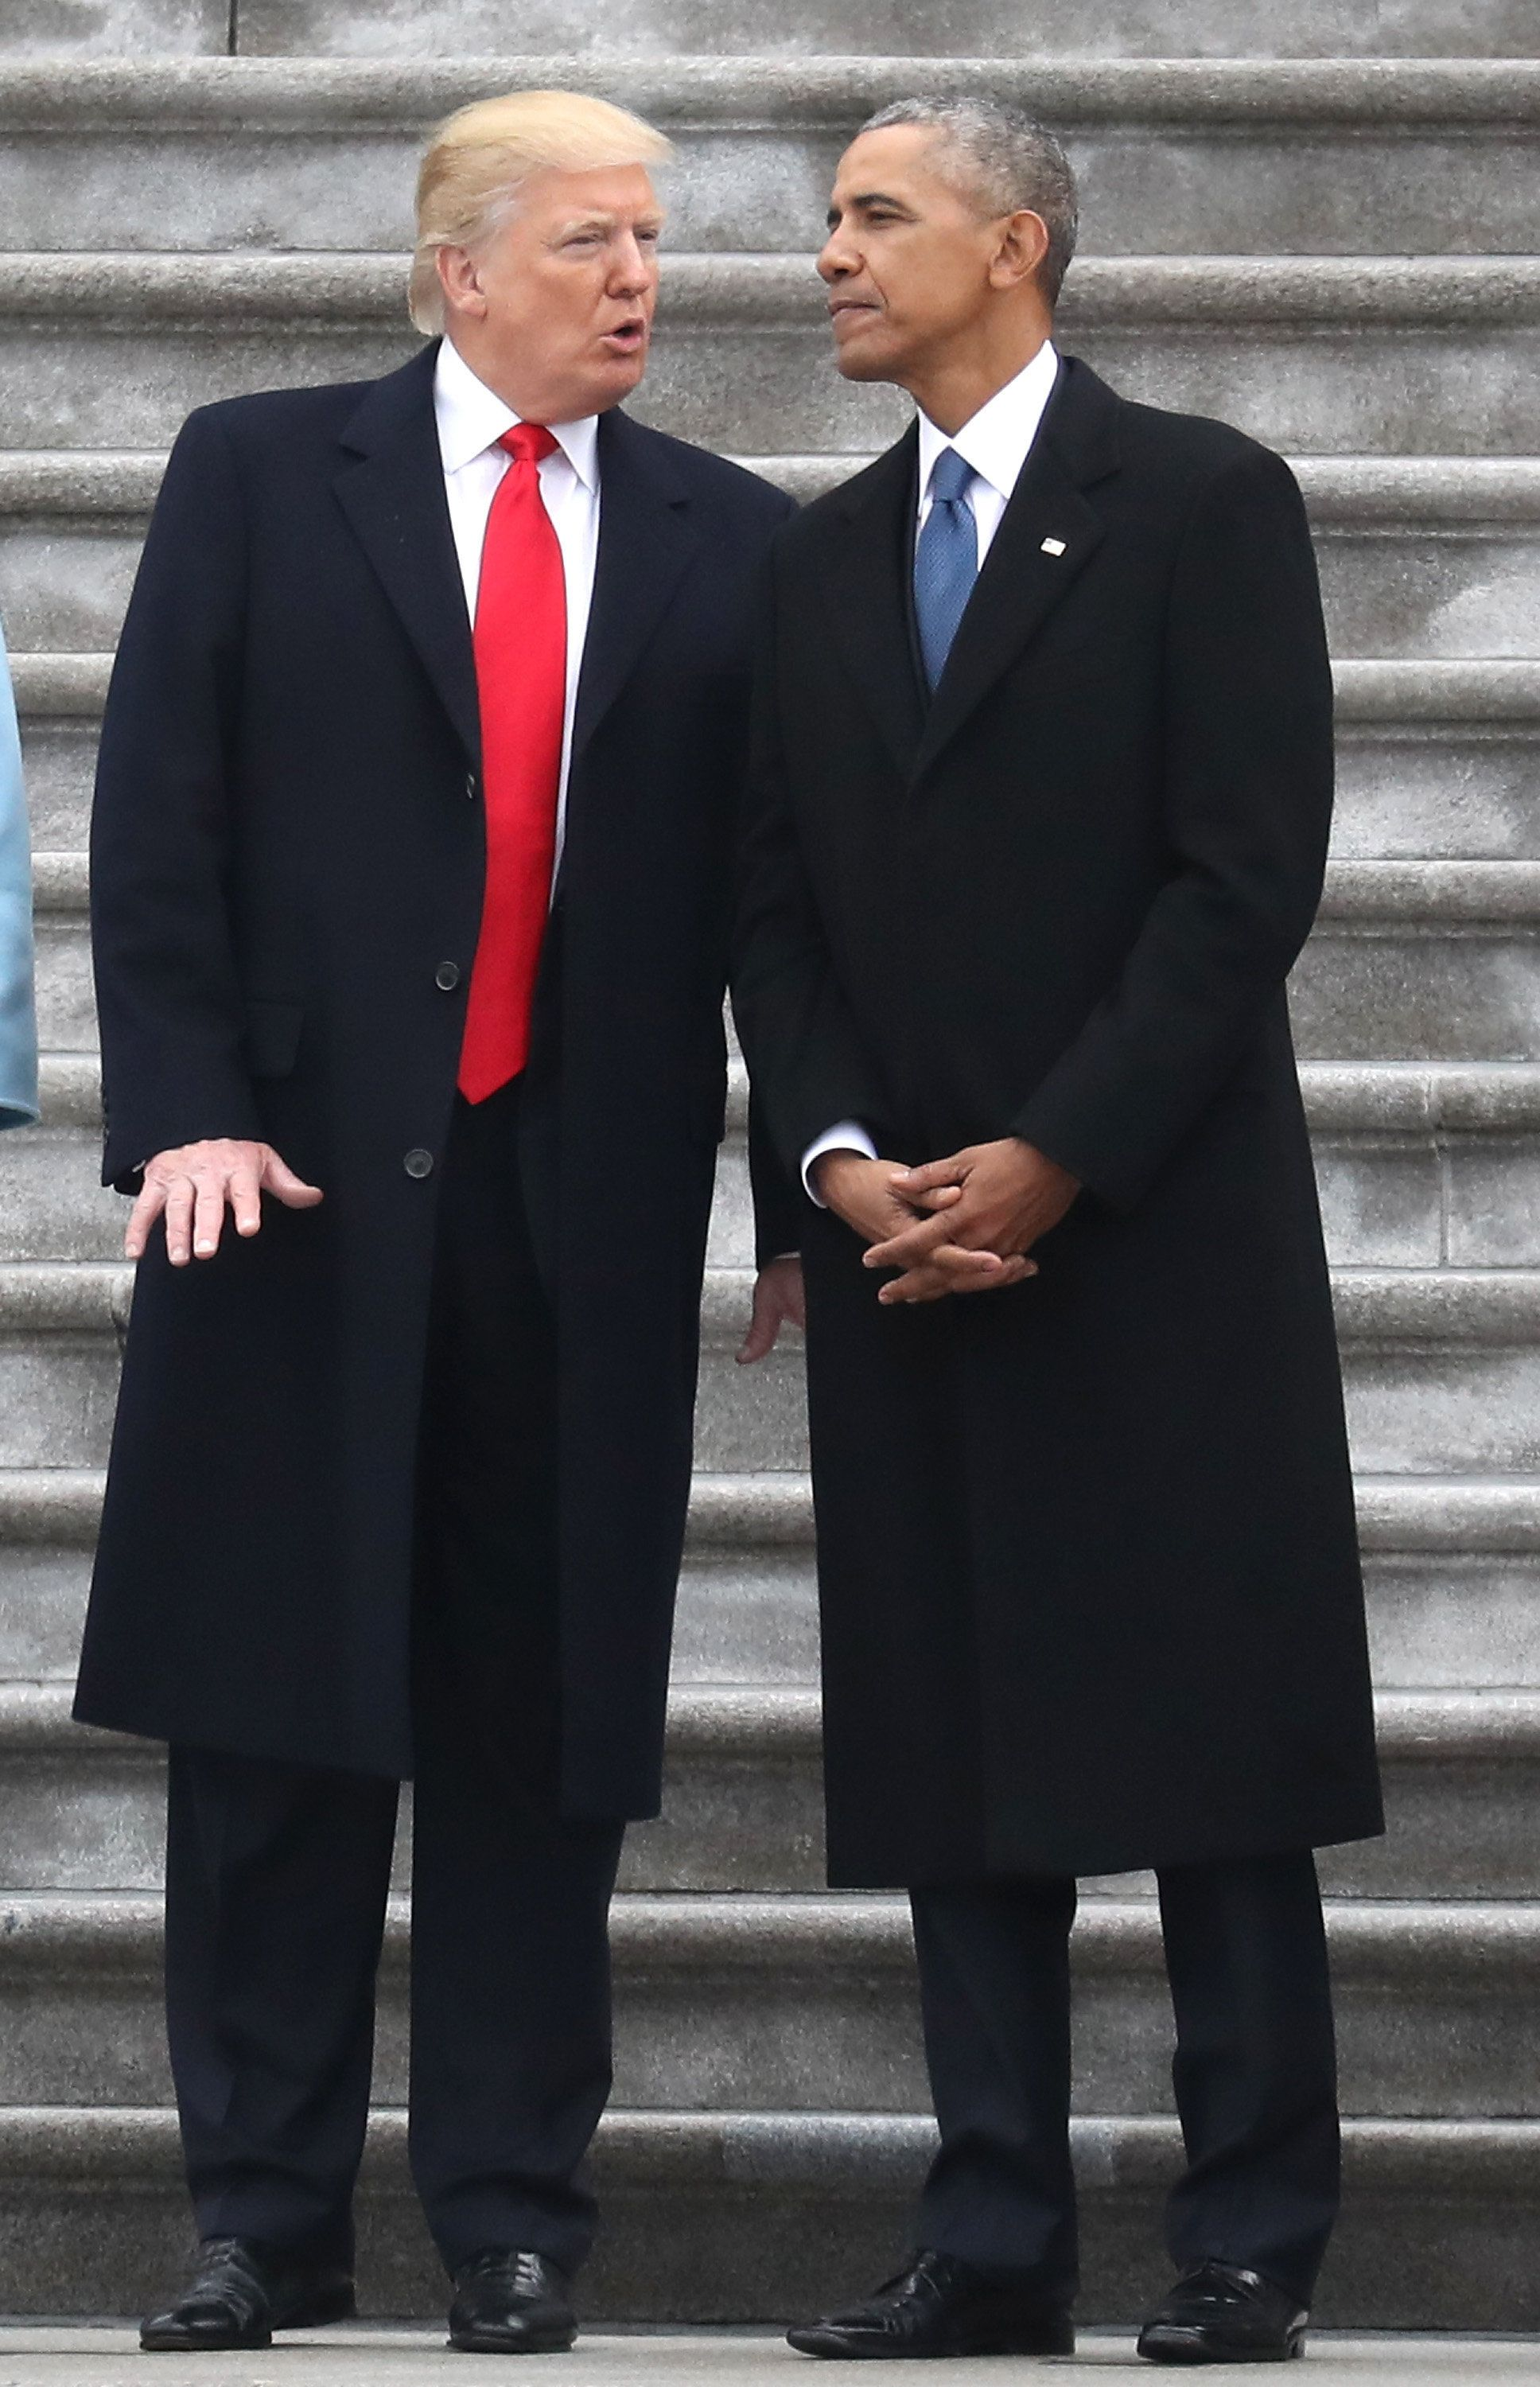 WASHINGTON, DC - JANUARY 20:  President Donald Trump and former president Barack Obama exchange words at the  U.S. Capitol  on January 20, 2017 in Washington, DC. In today's inauguration ceremony Donald J. Trump becomes the 45th president of the United States.  (Photo by Rob Carr/Getty Images)